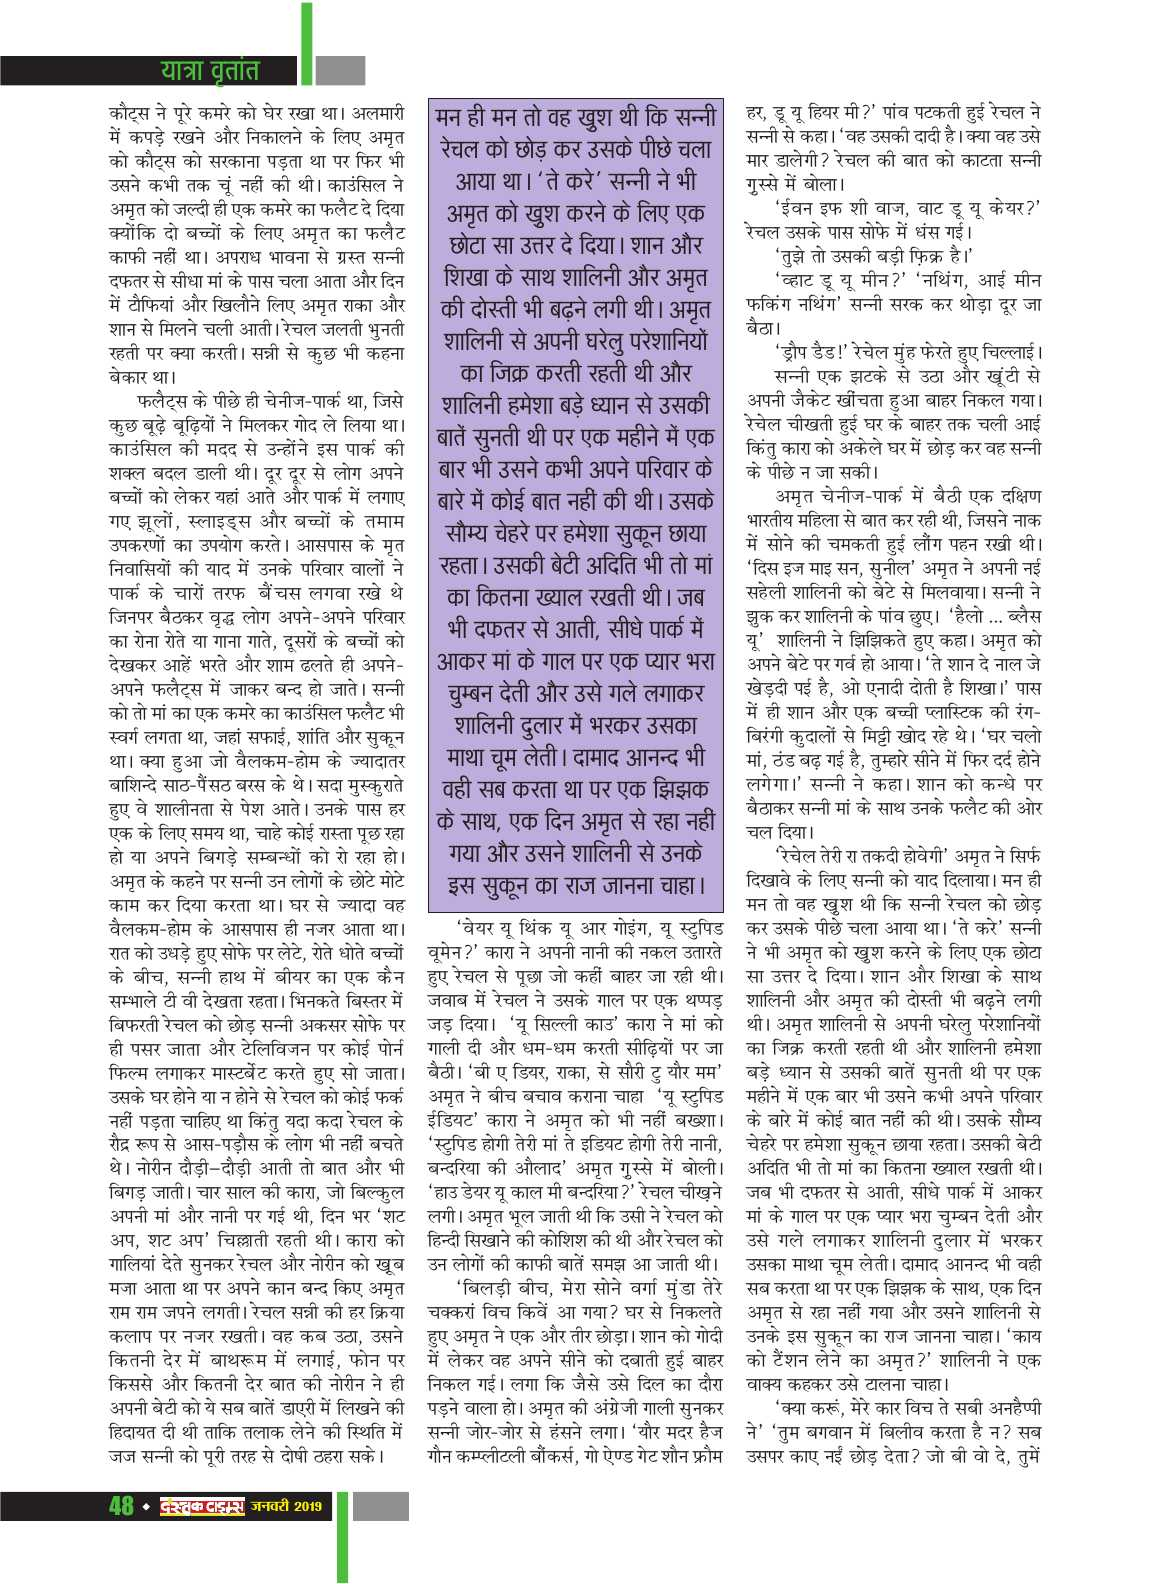 Dastak Times for E-Magazine 15 Jan 2019 new50